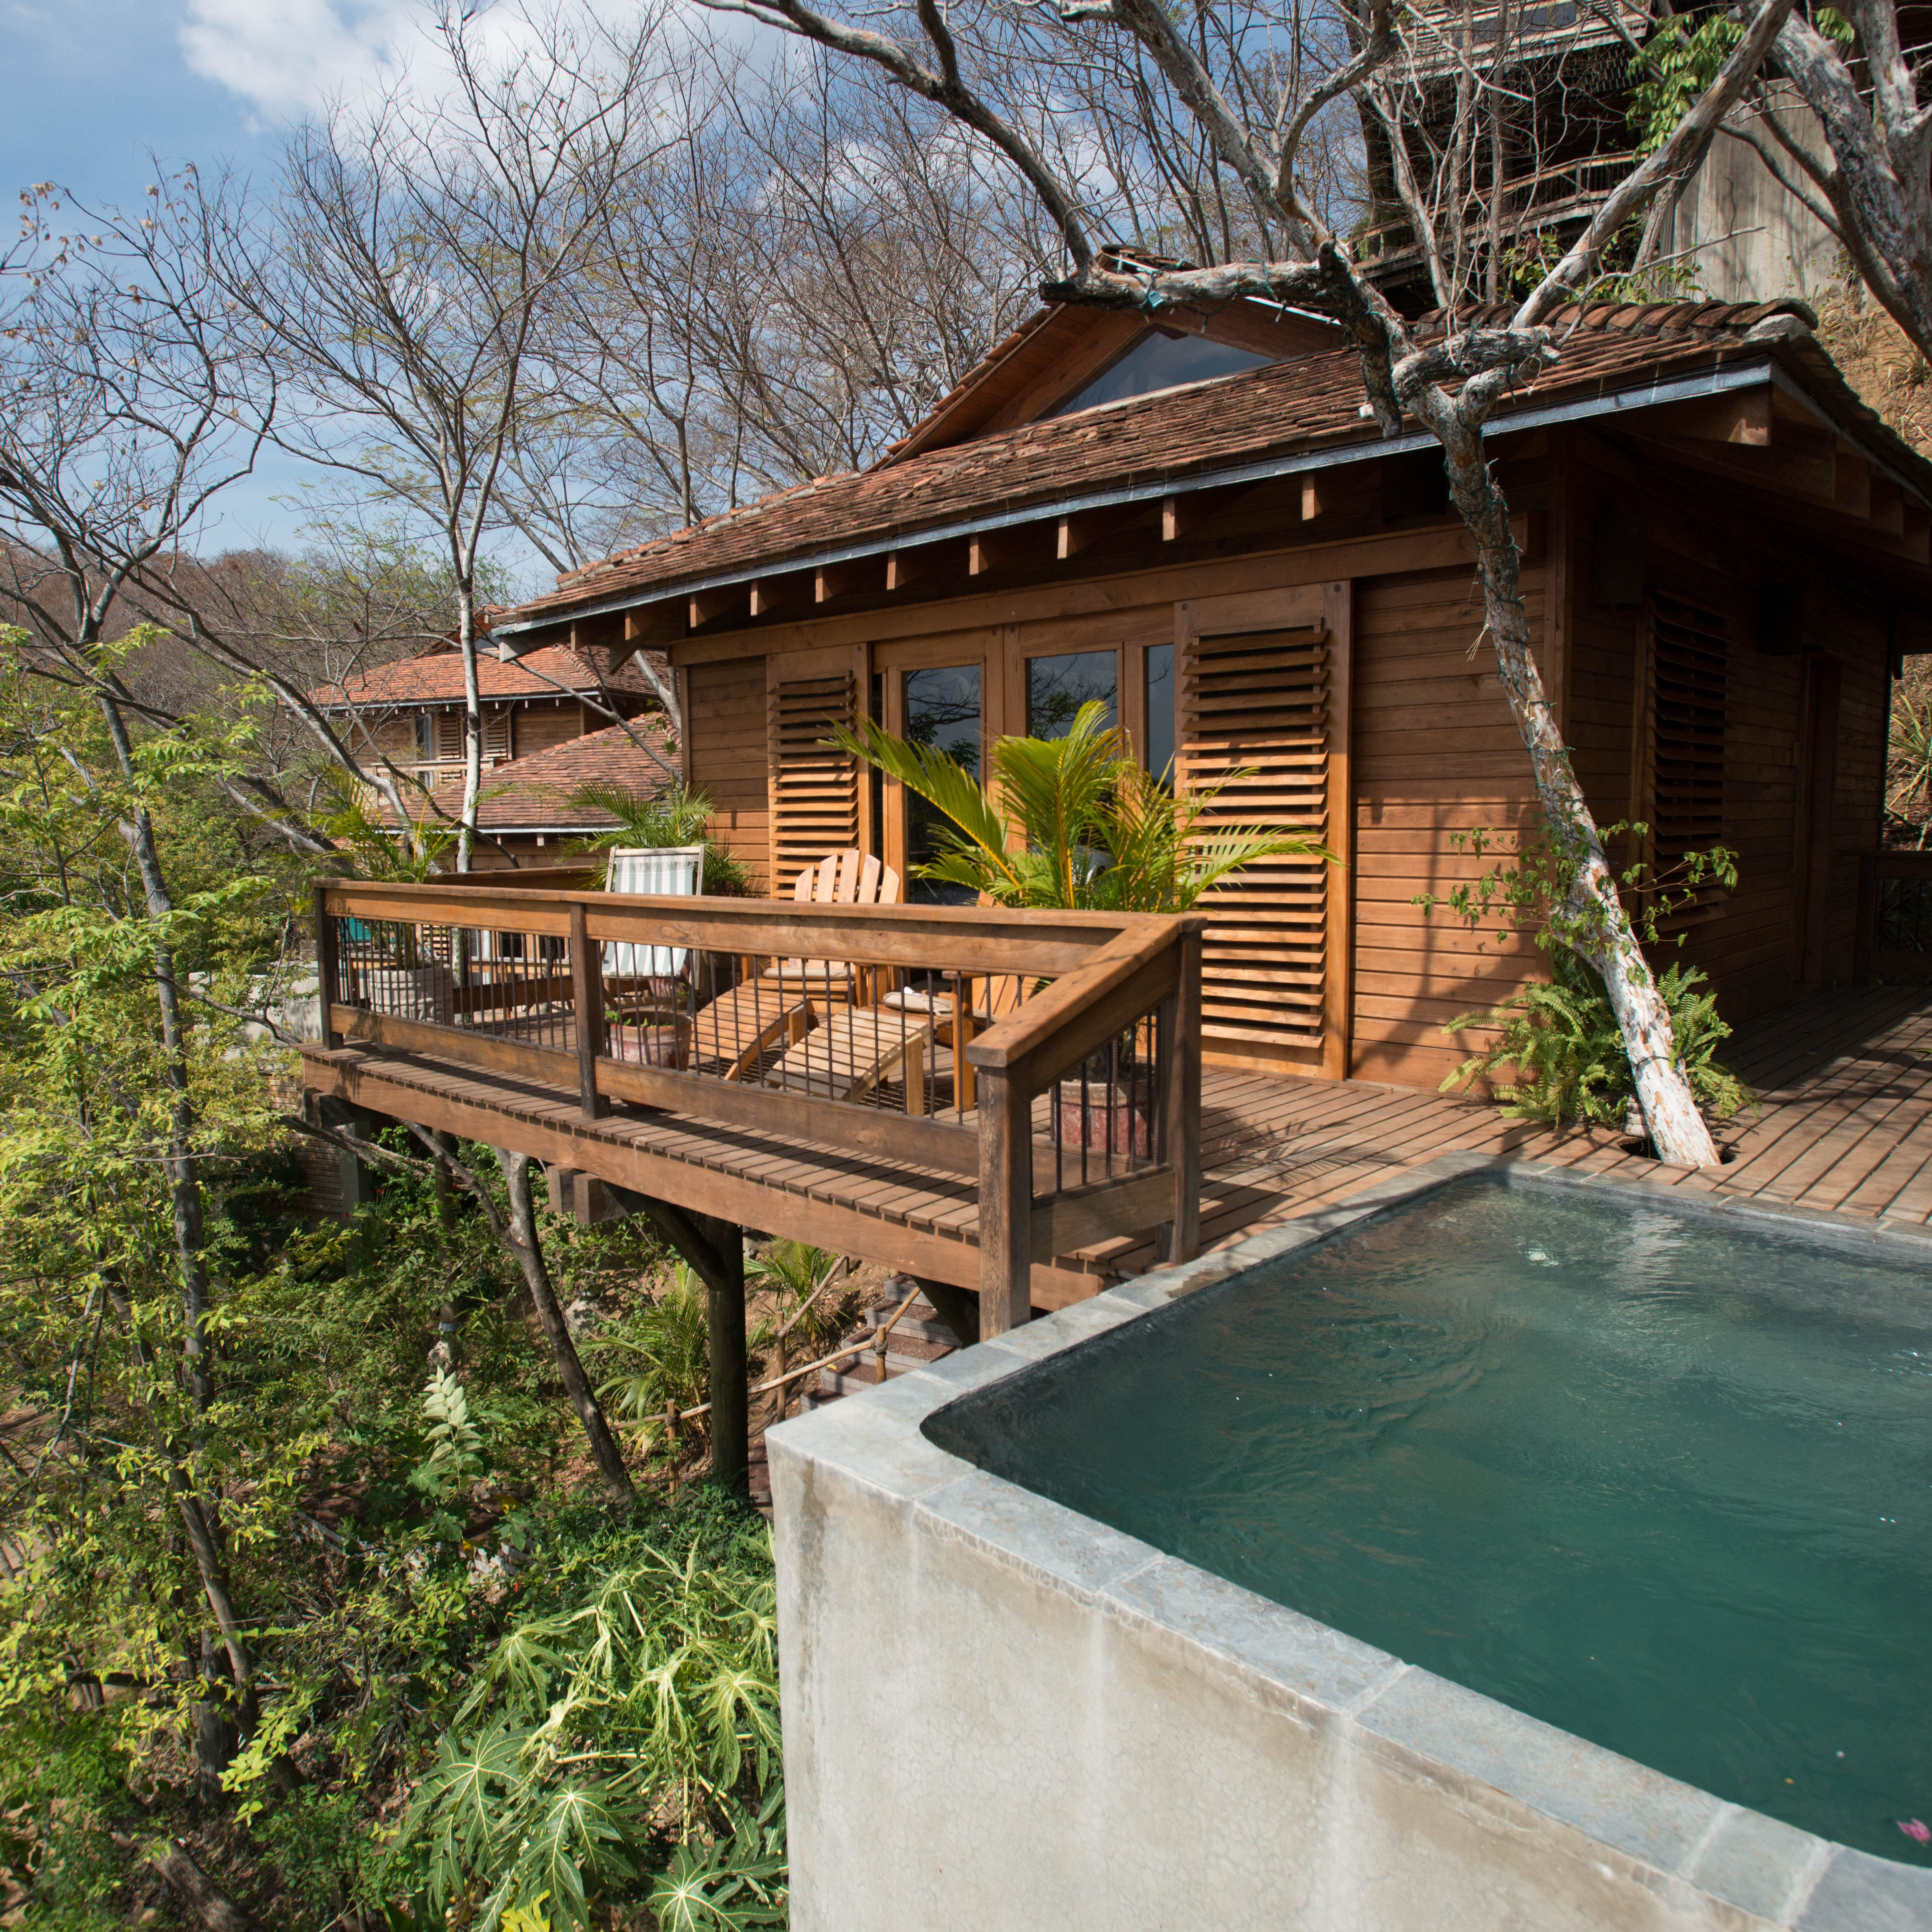 For those who want to reconnect with nature without really roughing it, Aqua Wellness Resort, a rustic-luxe retreat set into a hillside on Nicaragua's Pacific coast, is a solid pick.